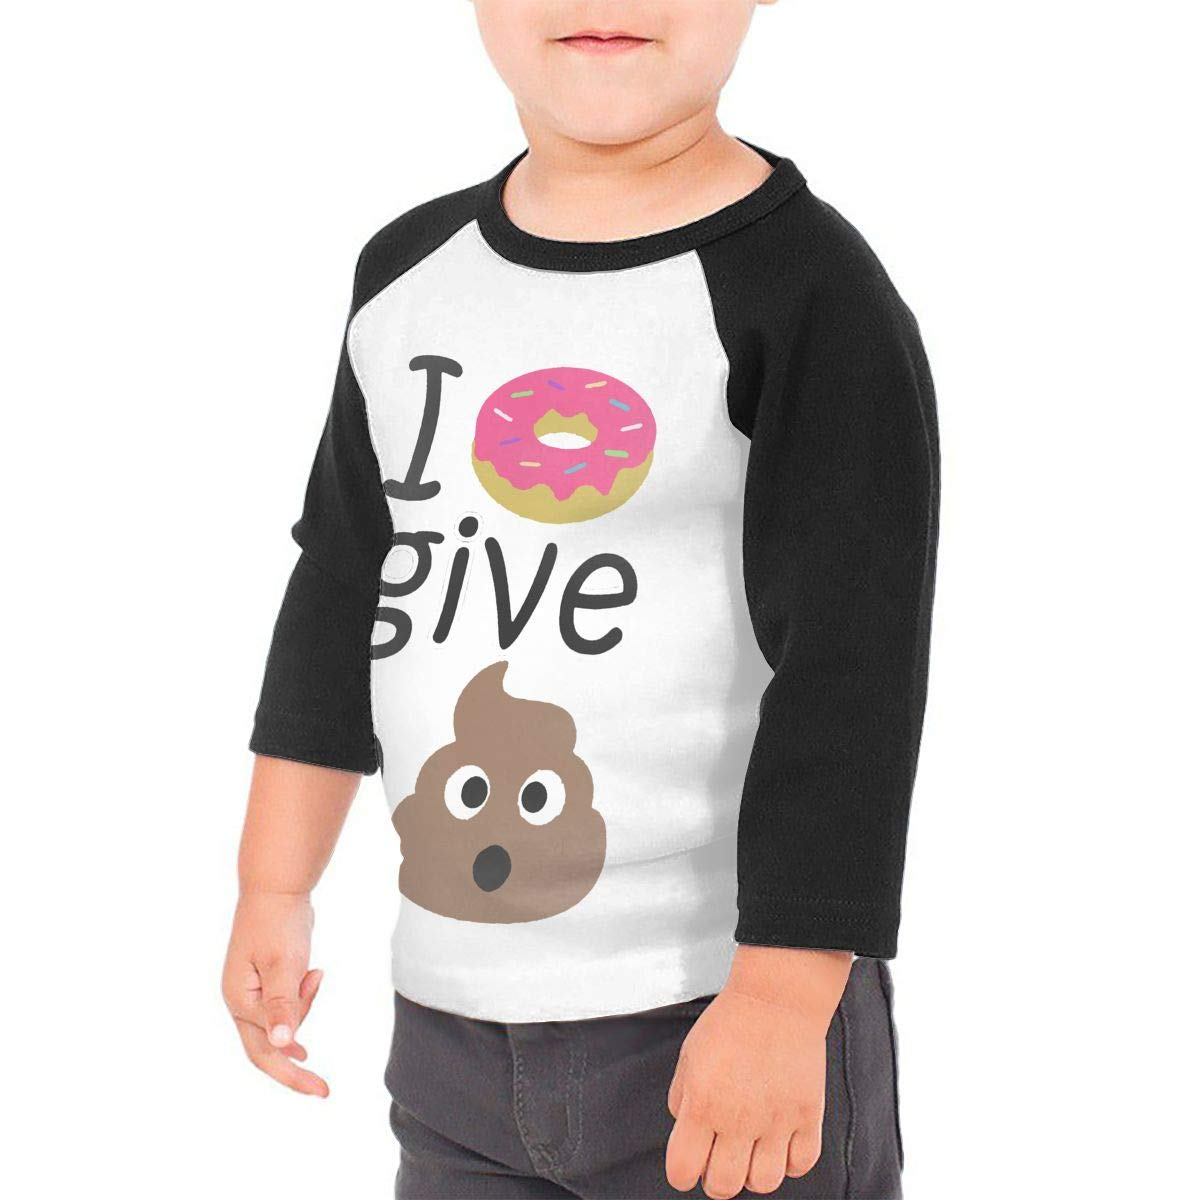 Manlee I Donut Give A Shit Unisex 100/% Cotton Childrens 3//4 Sleeves T-Shirt Top Tees 2T~5//6T